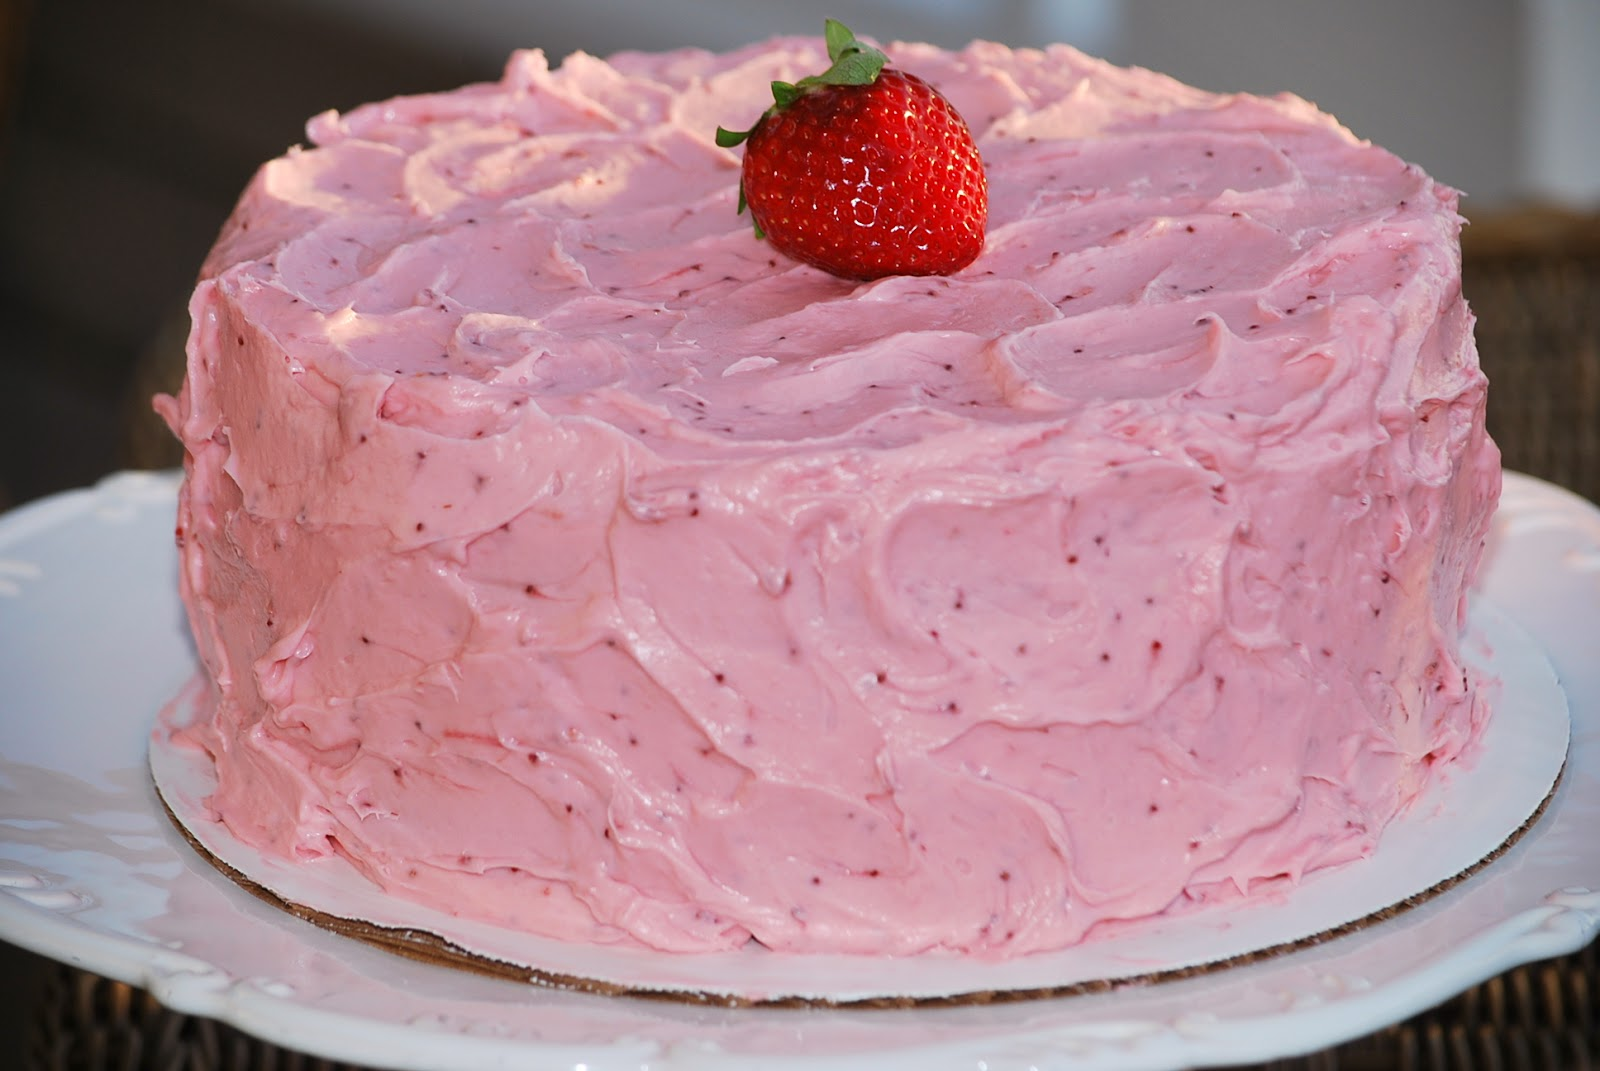 My story in recipes: Strawberry Cake